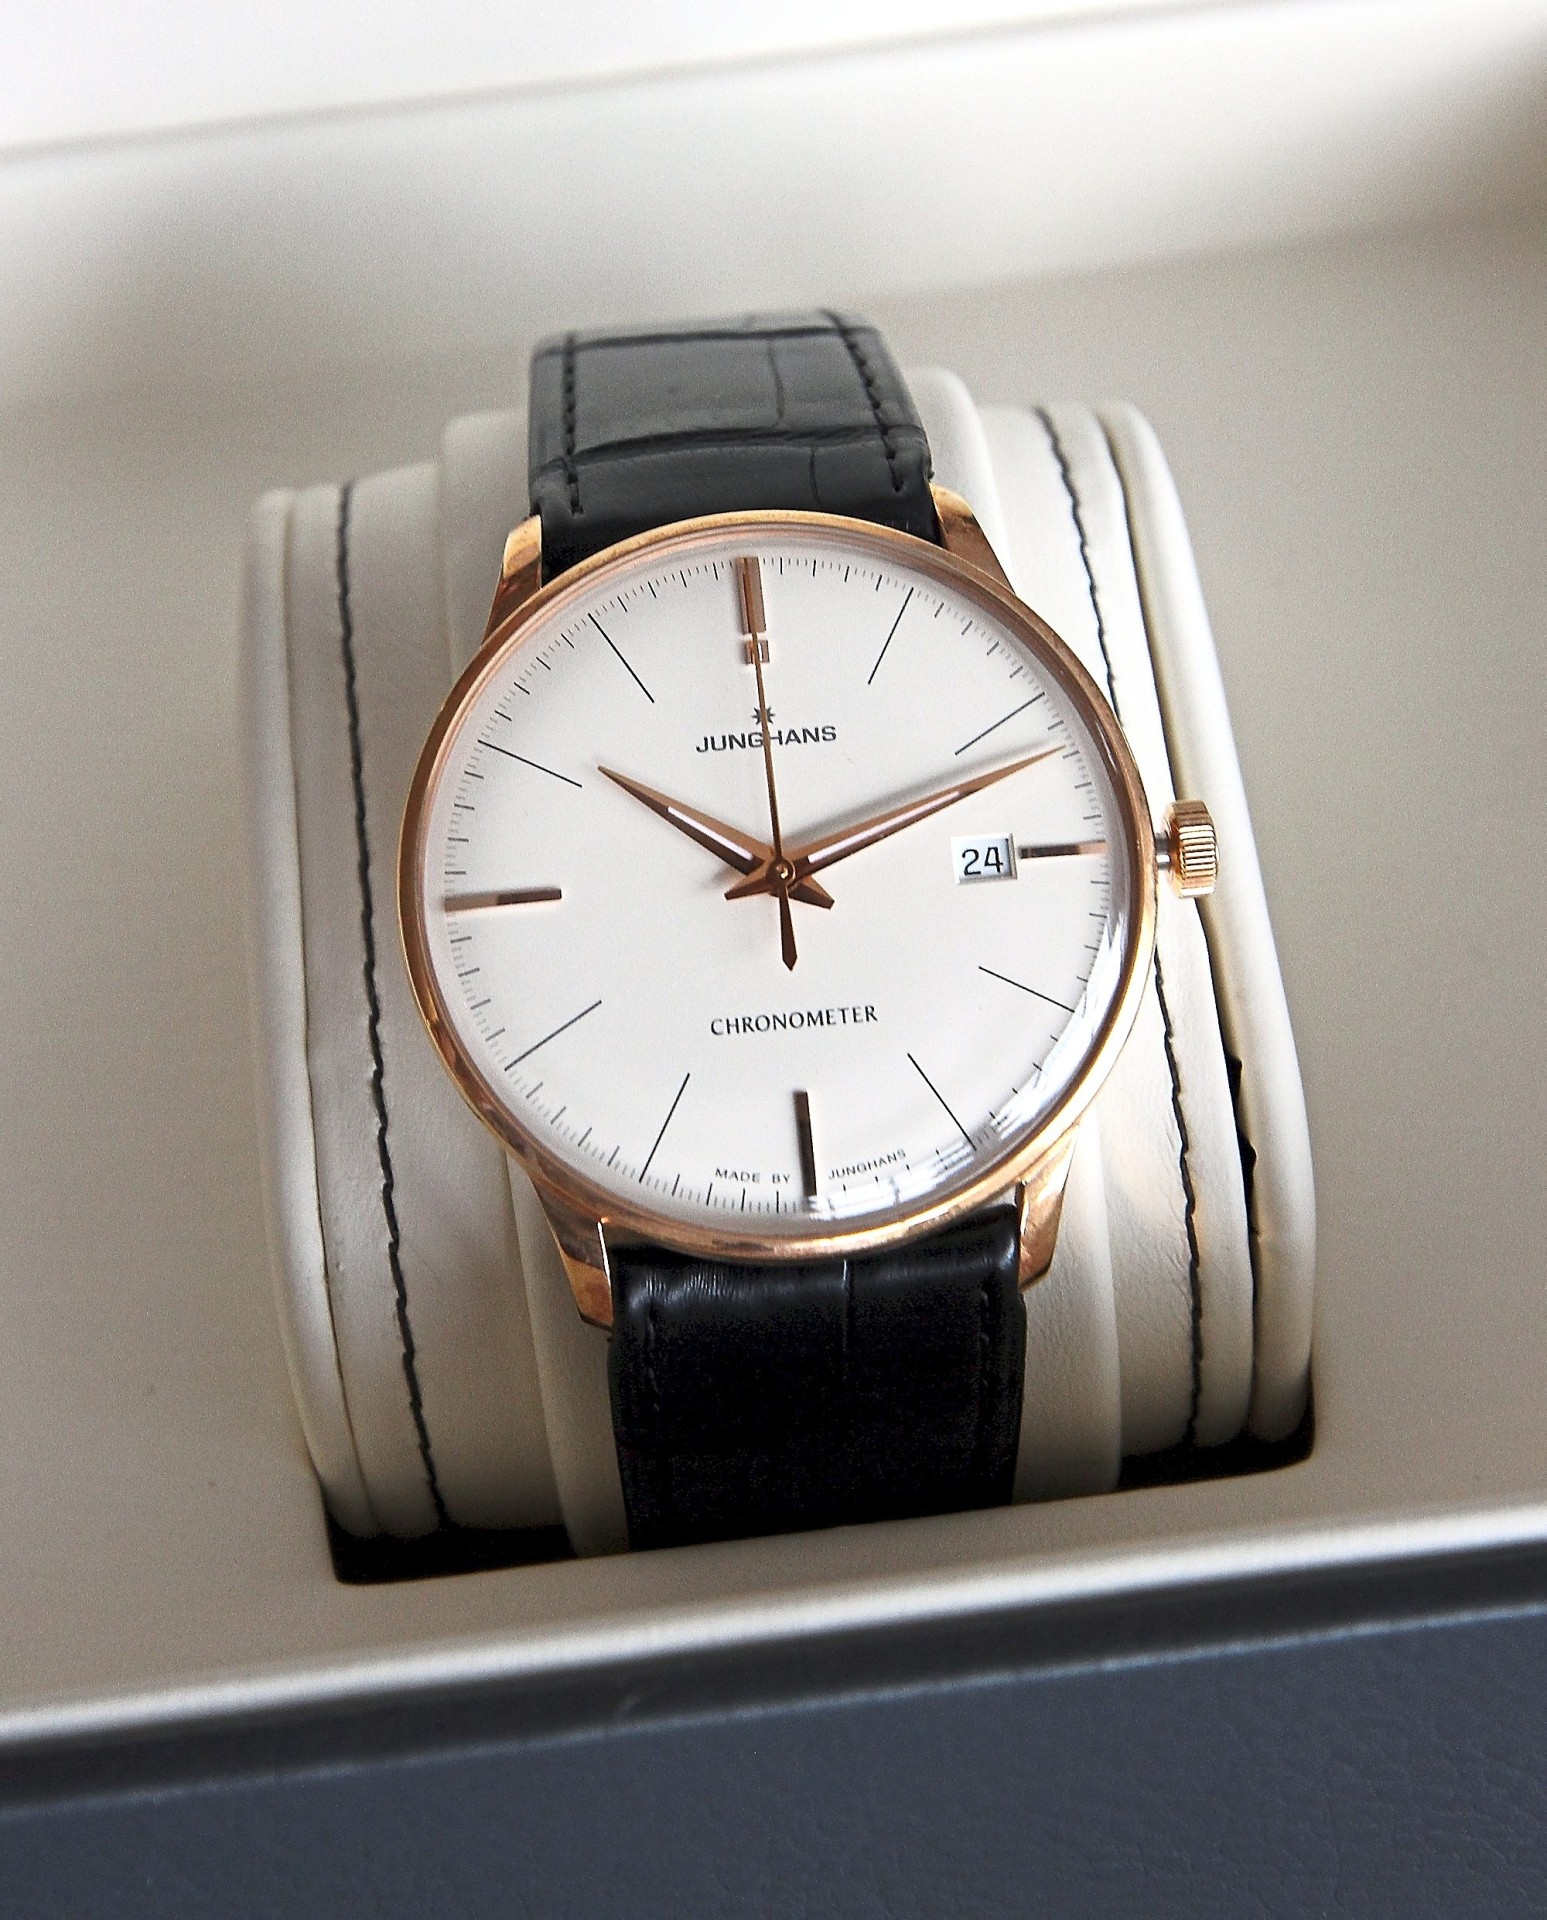 Junghans Meister Chronometer Gold  was regarded as 'the first German time  in Malaysia'.